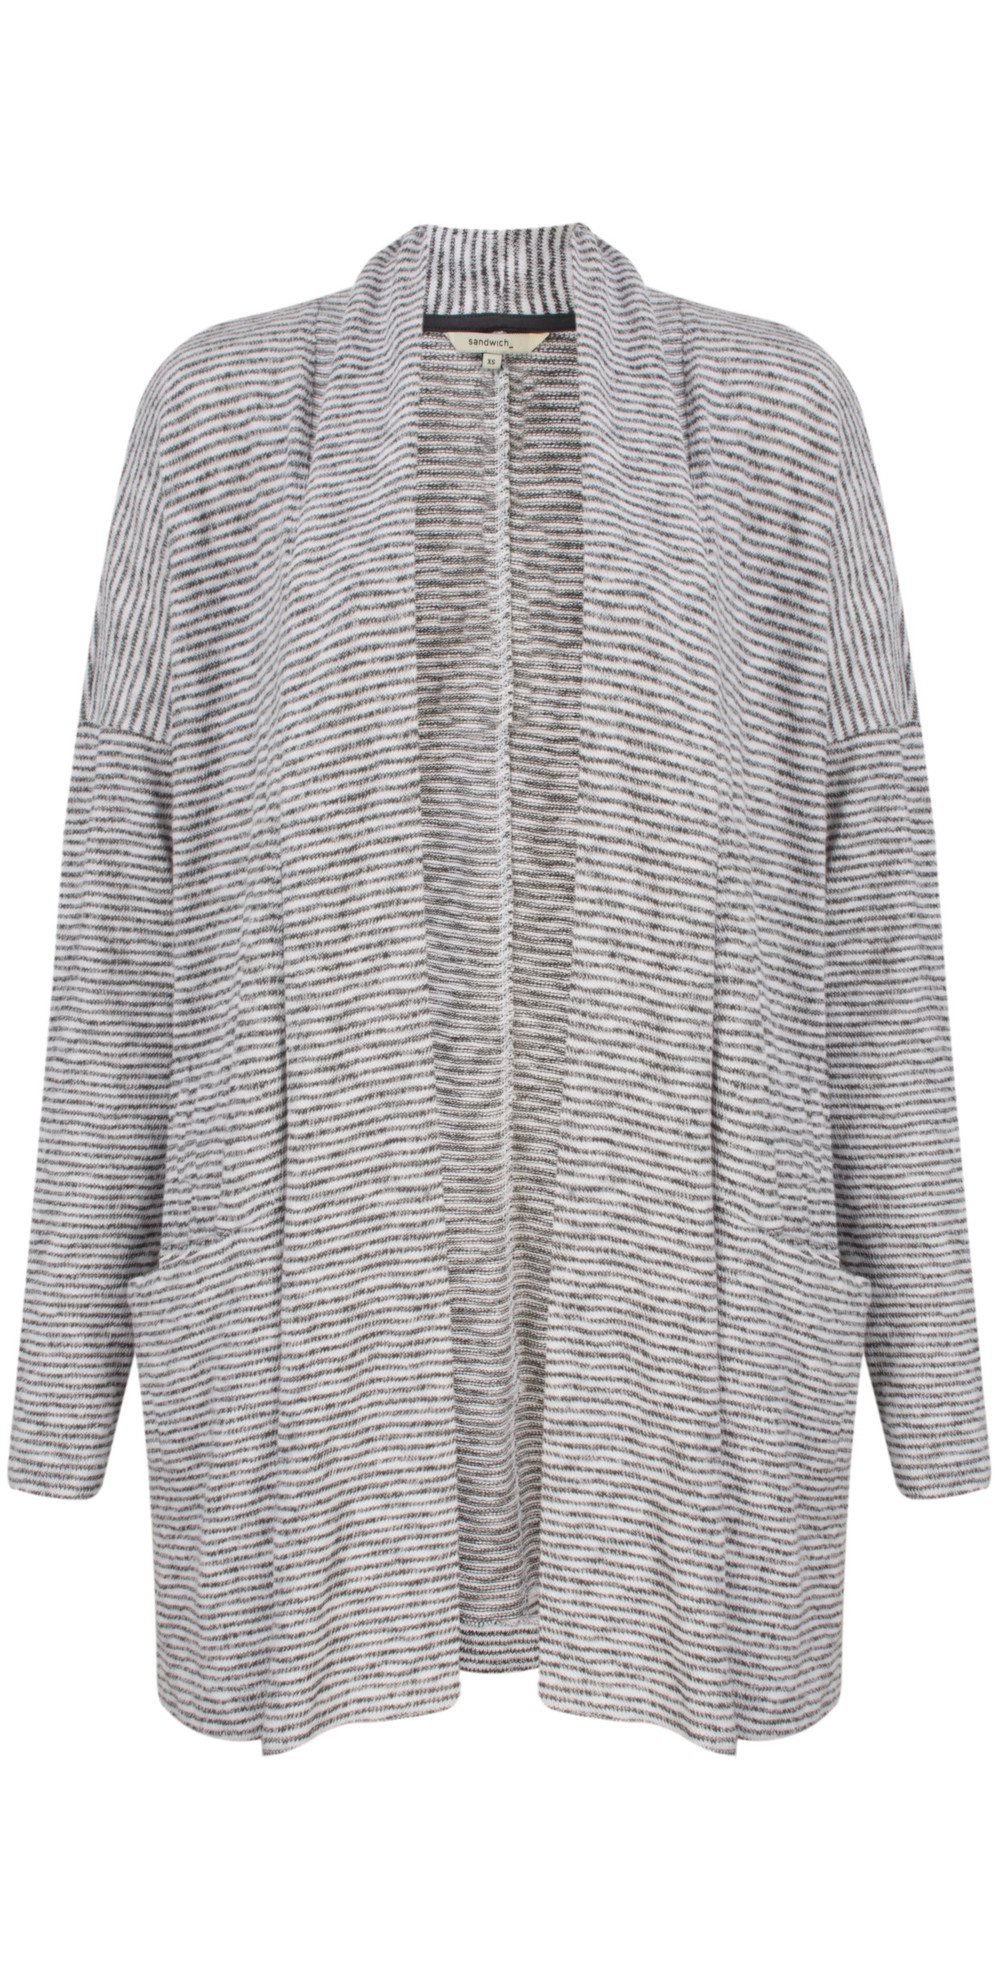 Woven Striped Jersey Cardigan main image